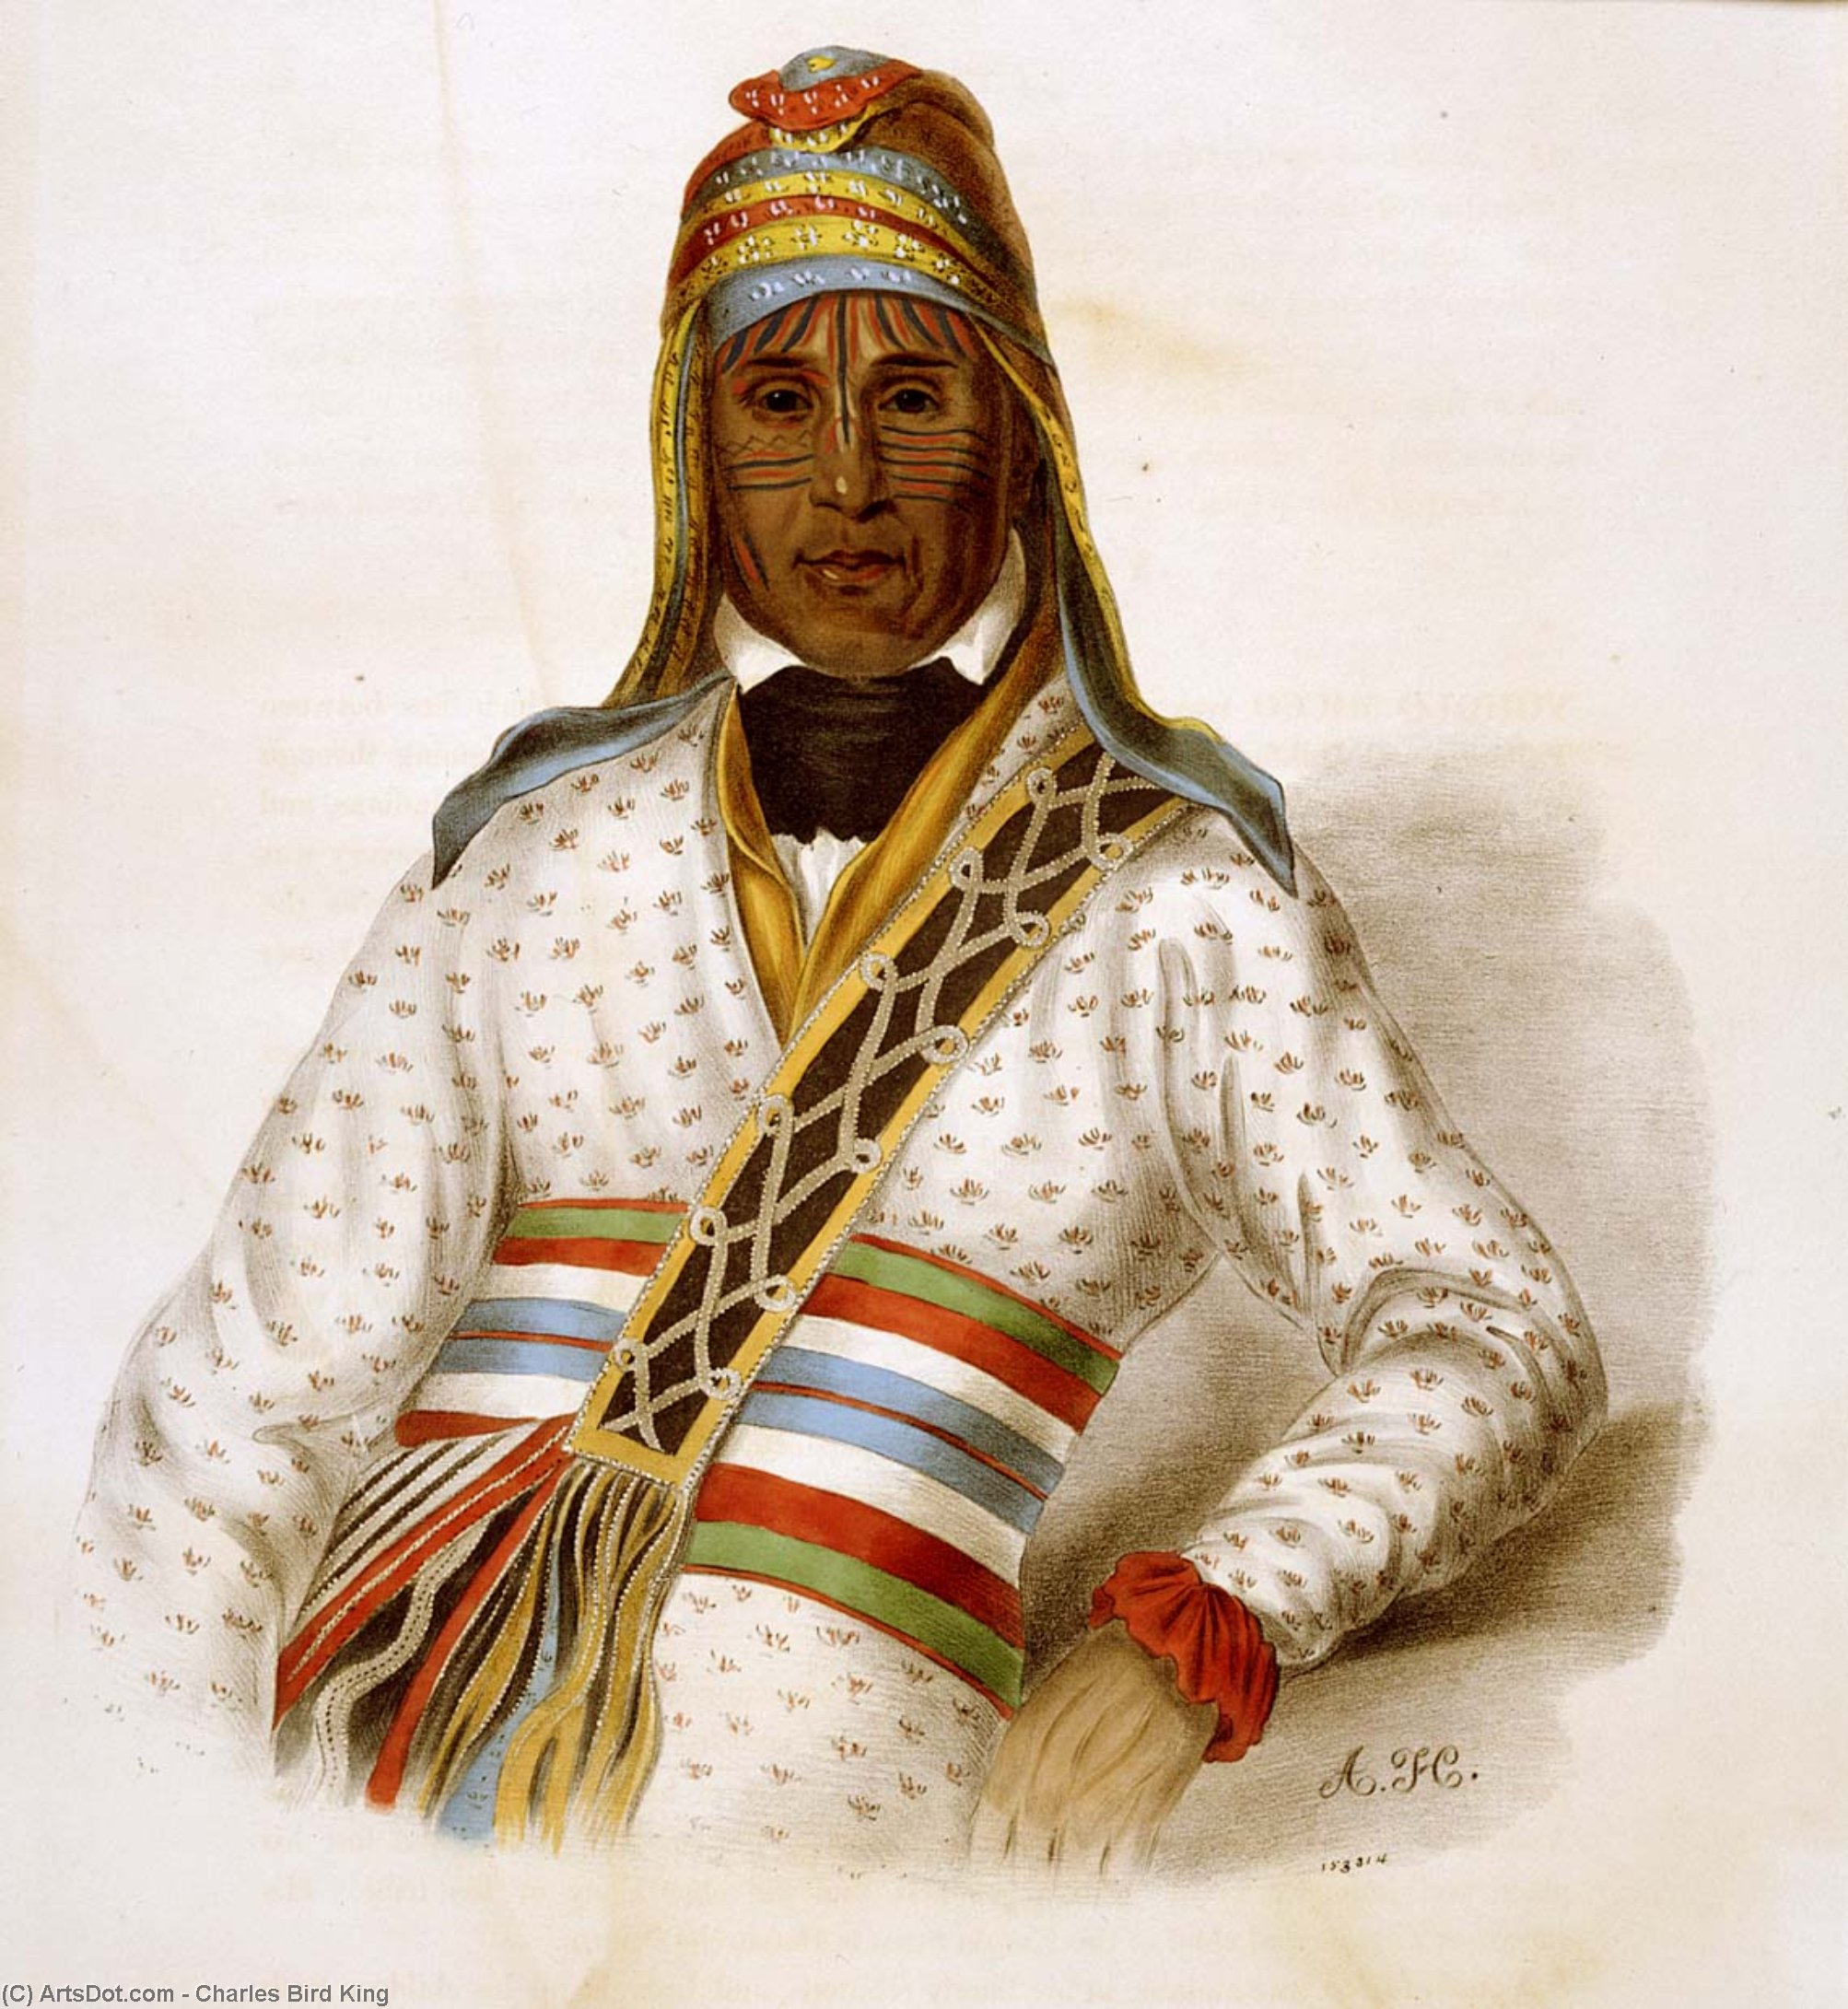 YOHOLO-MICCO. A CREEK CHIEF, Oil by Charles Bird King (1785-1862, United States)